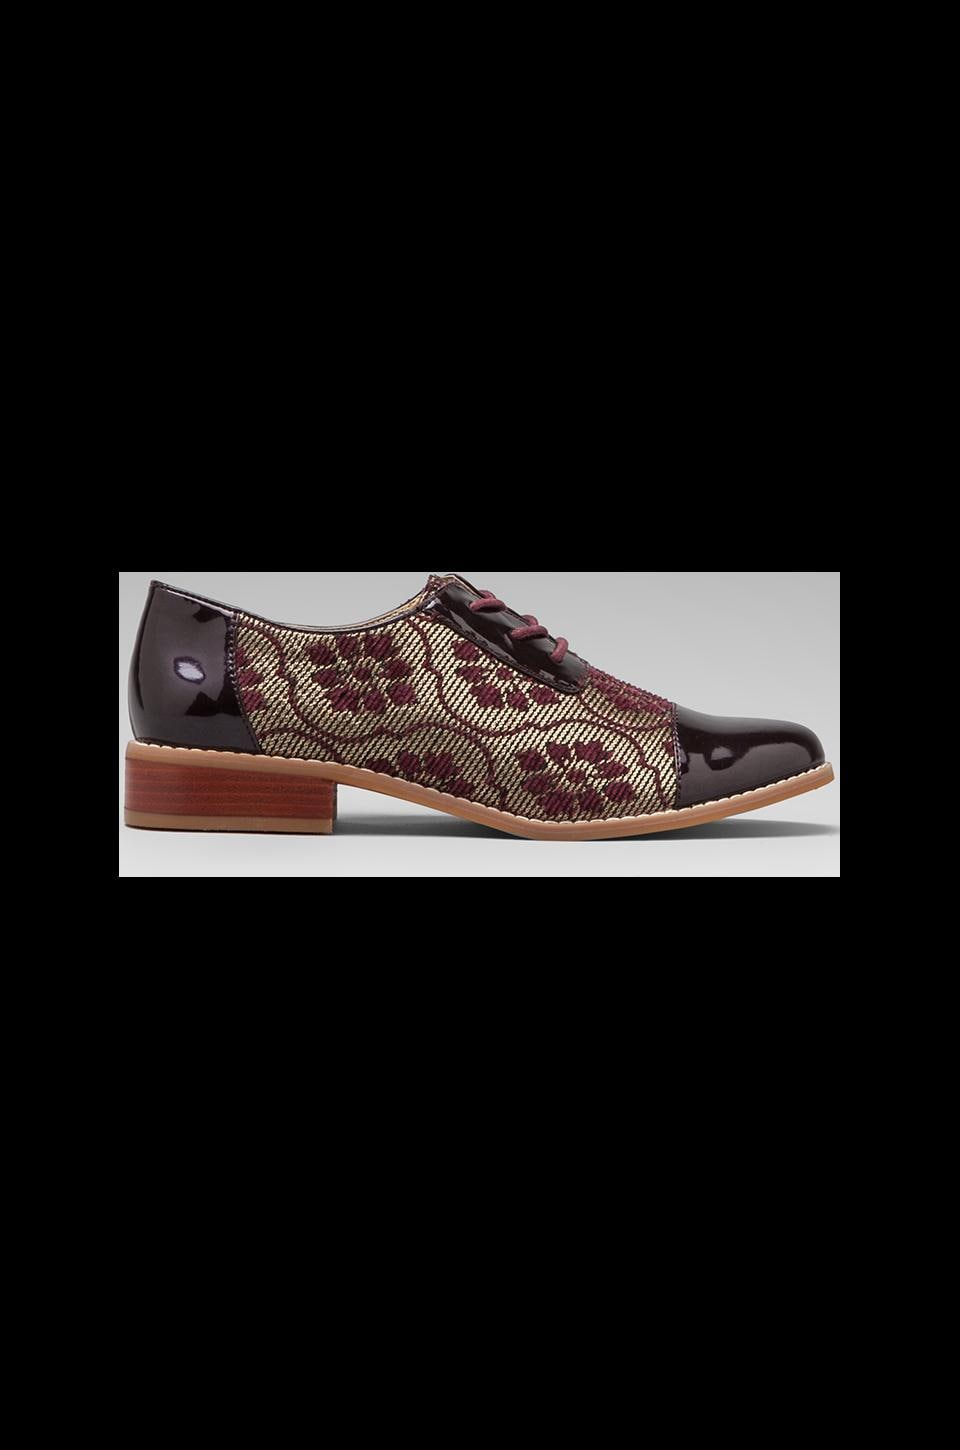 Seychelles By Your Side Oxford in Burgundy Brocade